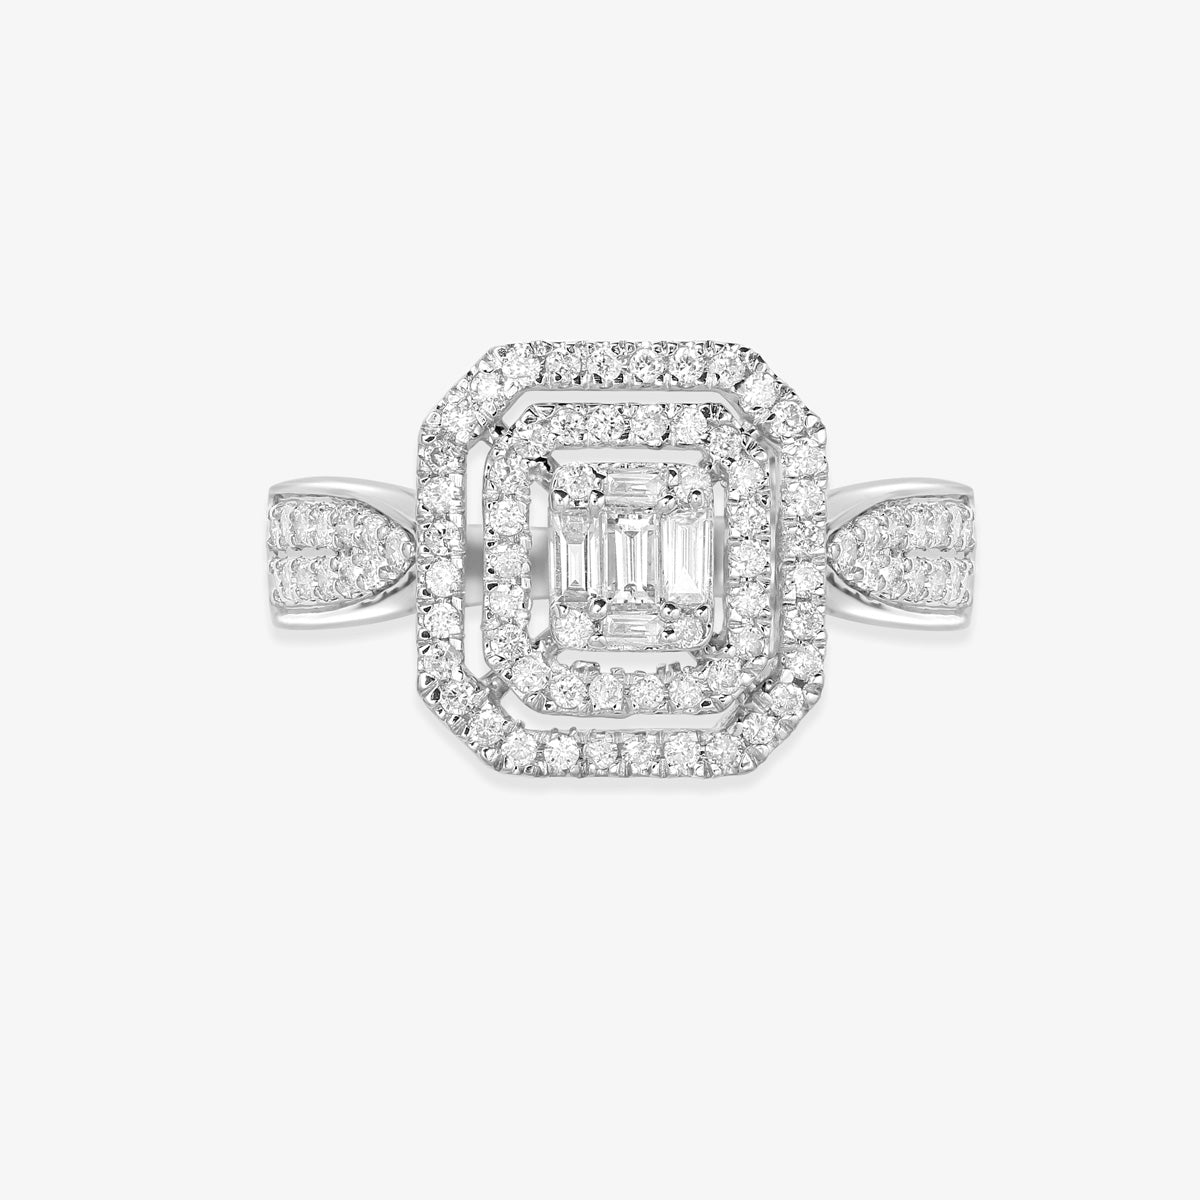 Double Halo Engagement Ring With Baguettes And Round Diamonds - estellacollection